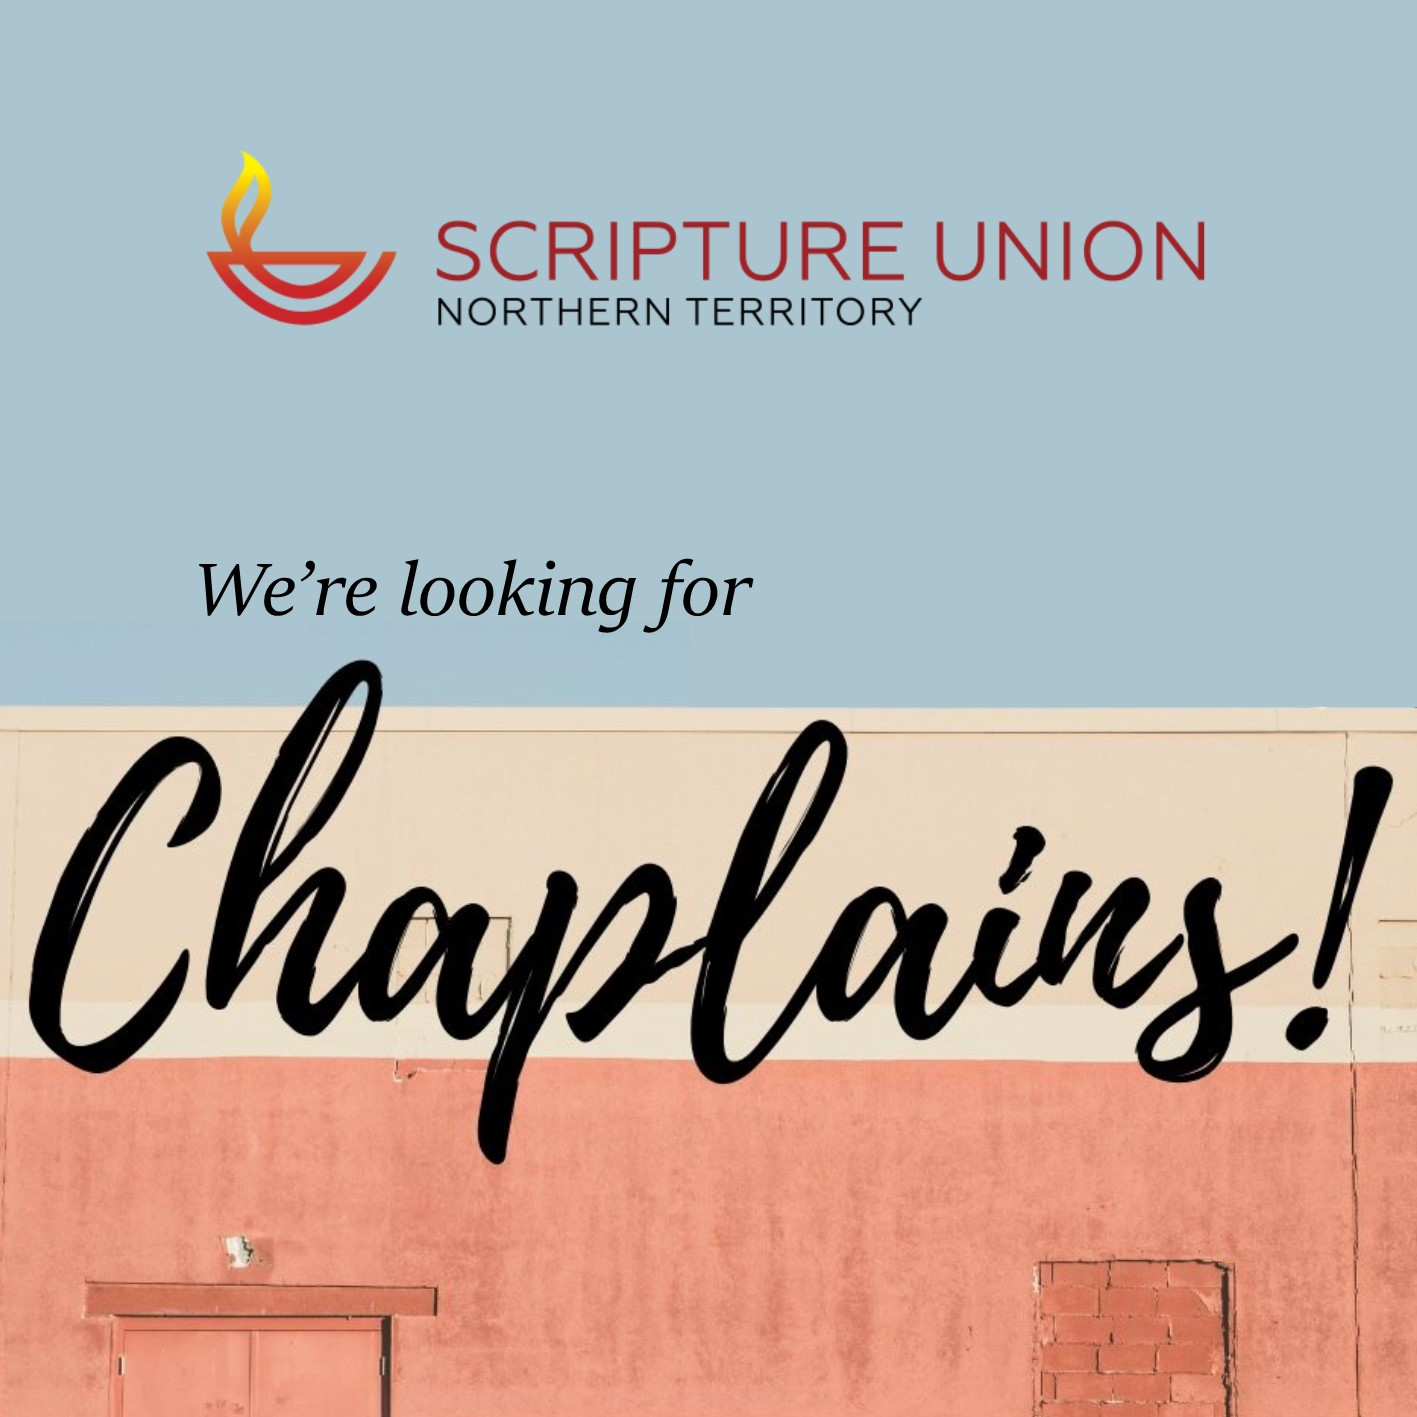 We're looking for chaplains!